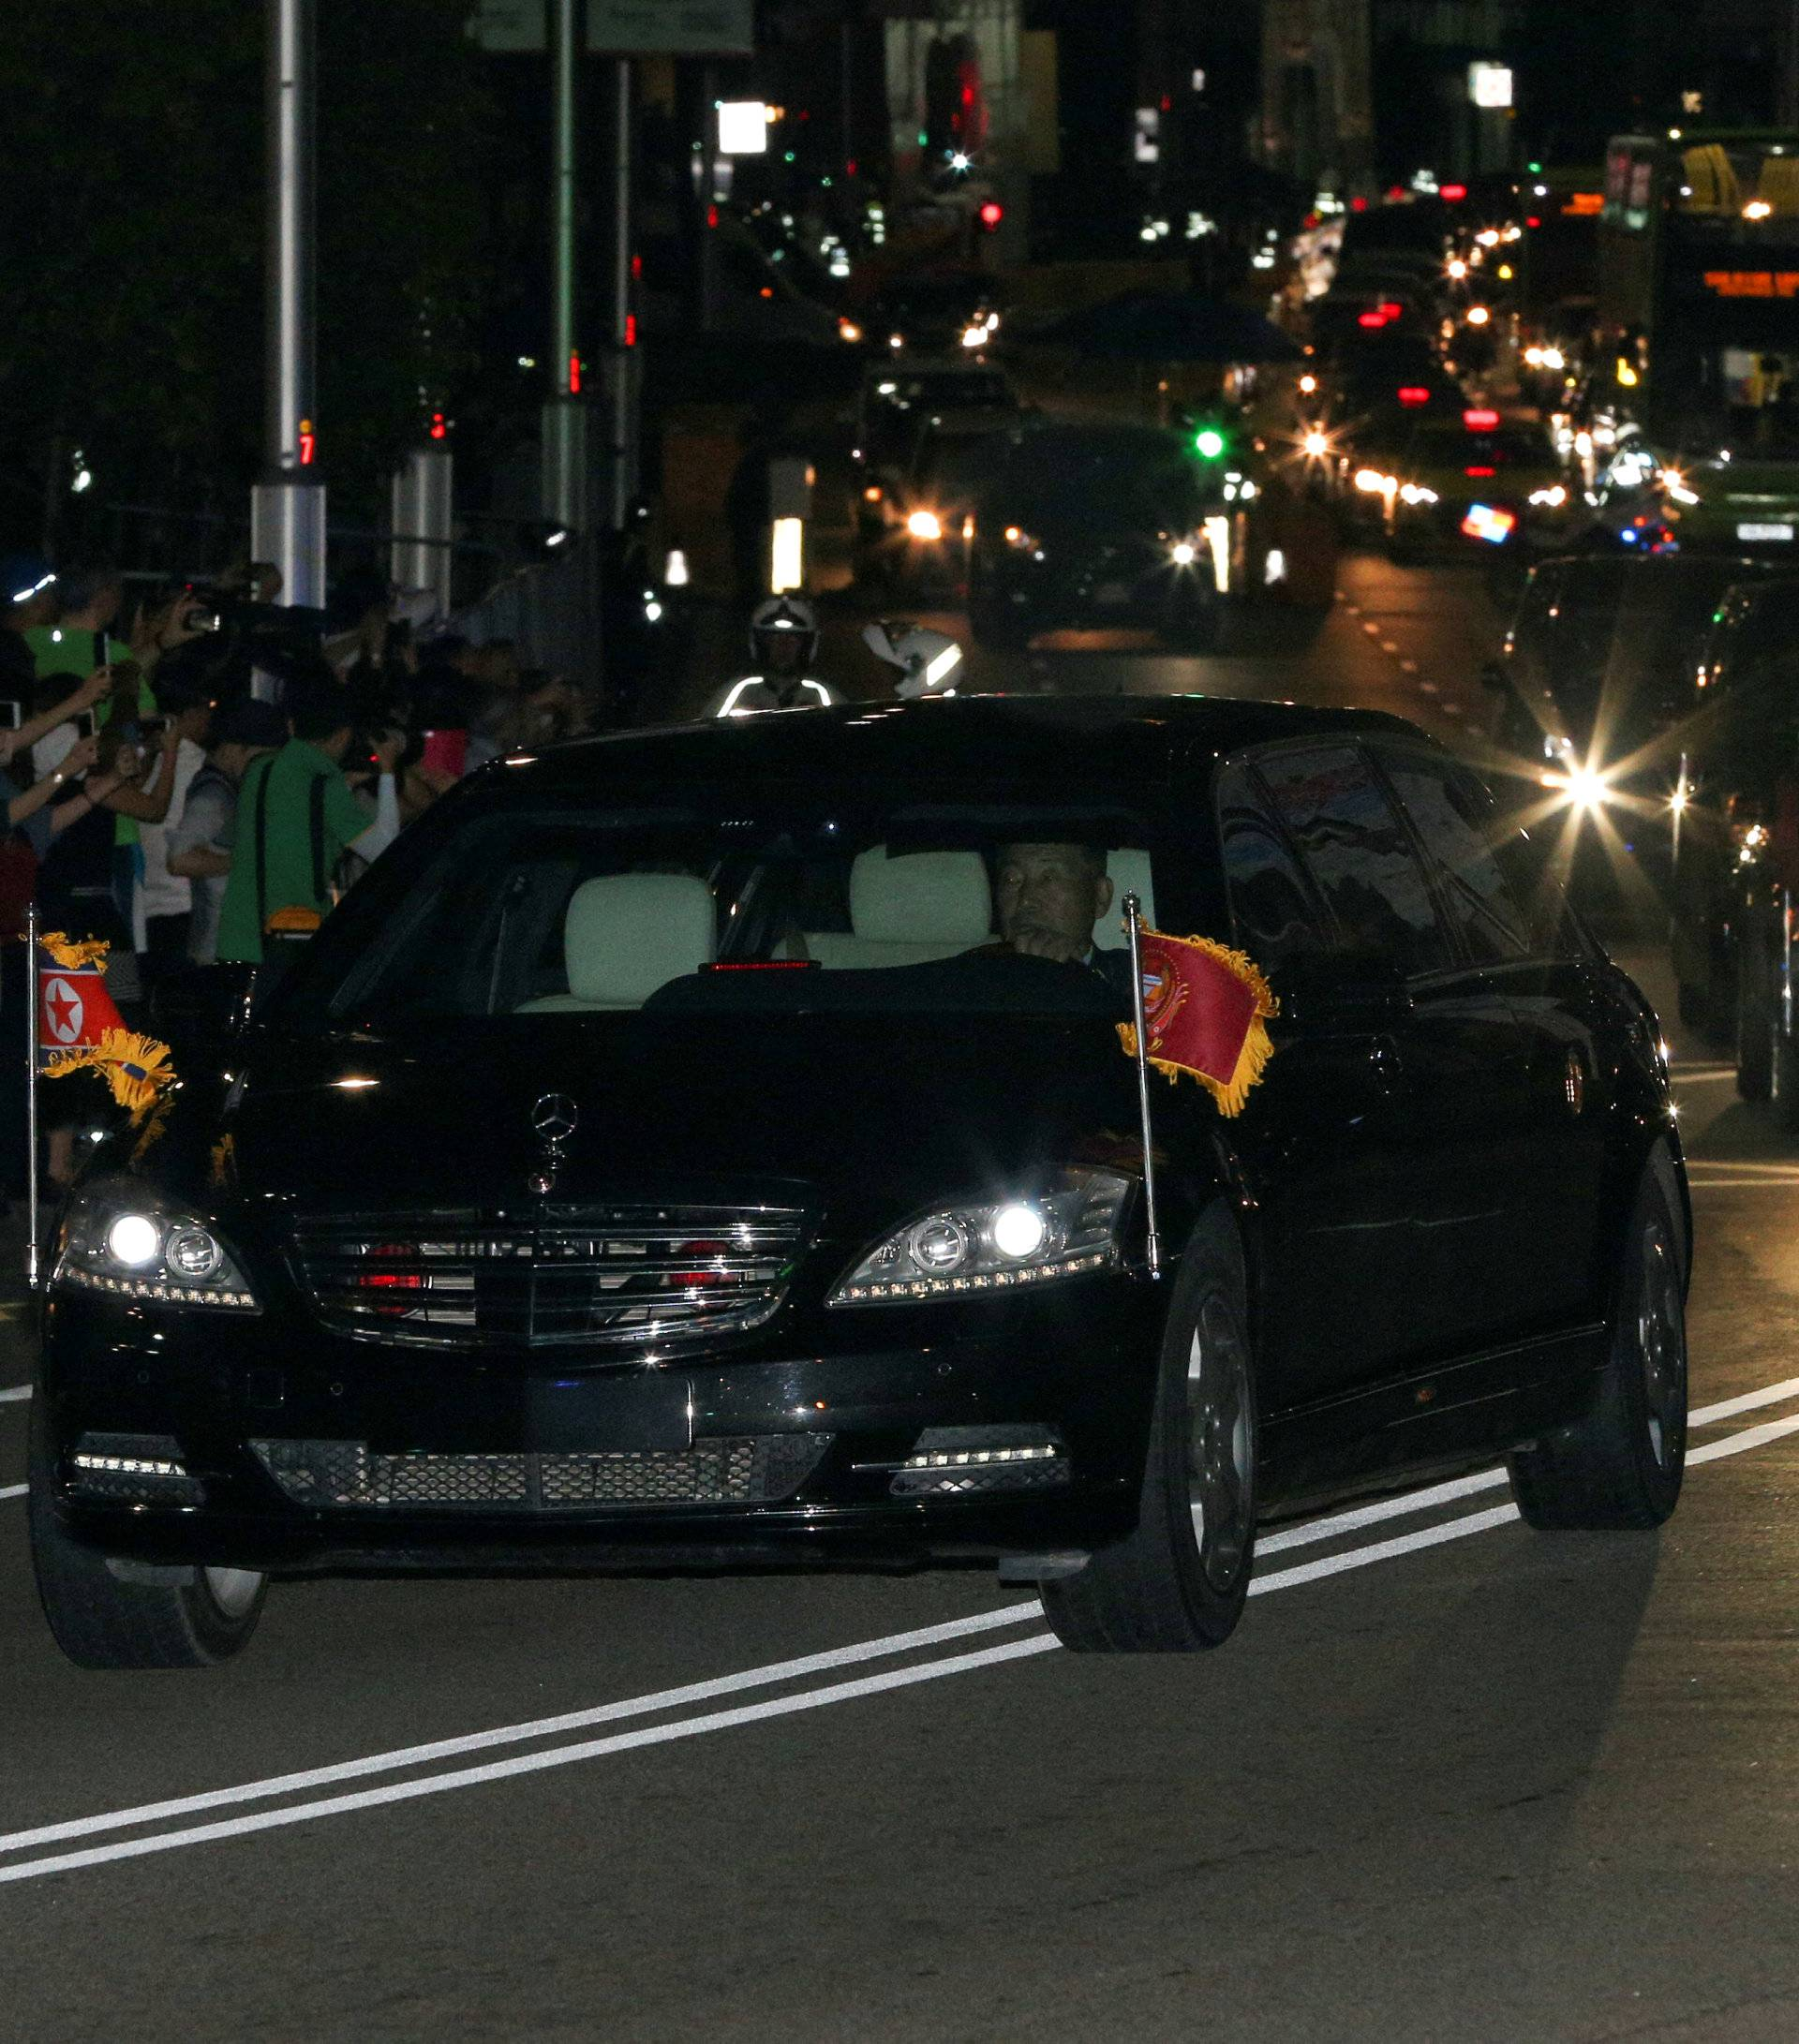 The vehicle carrying North Korean leader Kim Jong Un leaves the St Regis hotel in Singapore